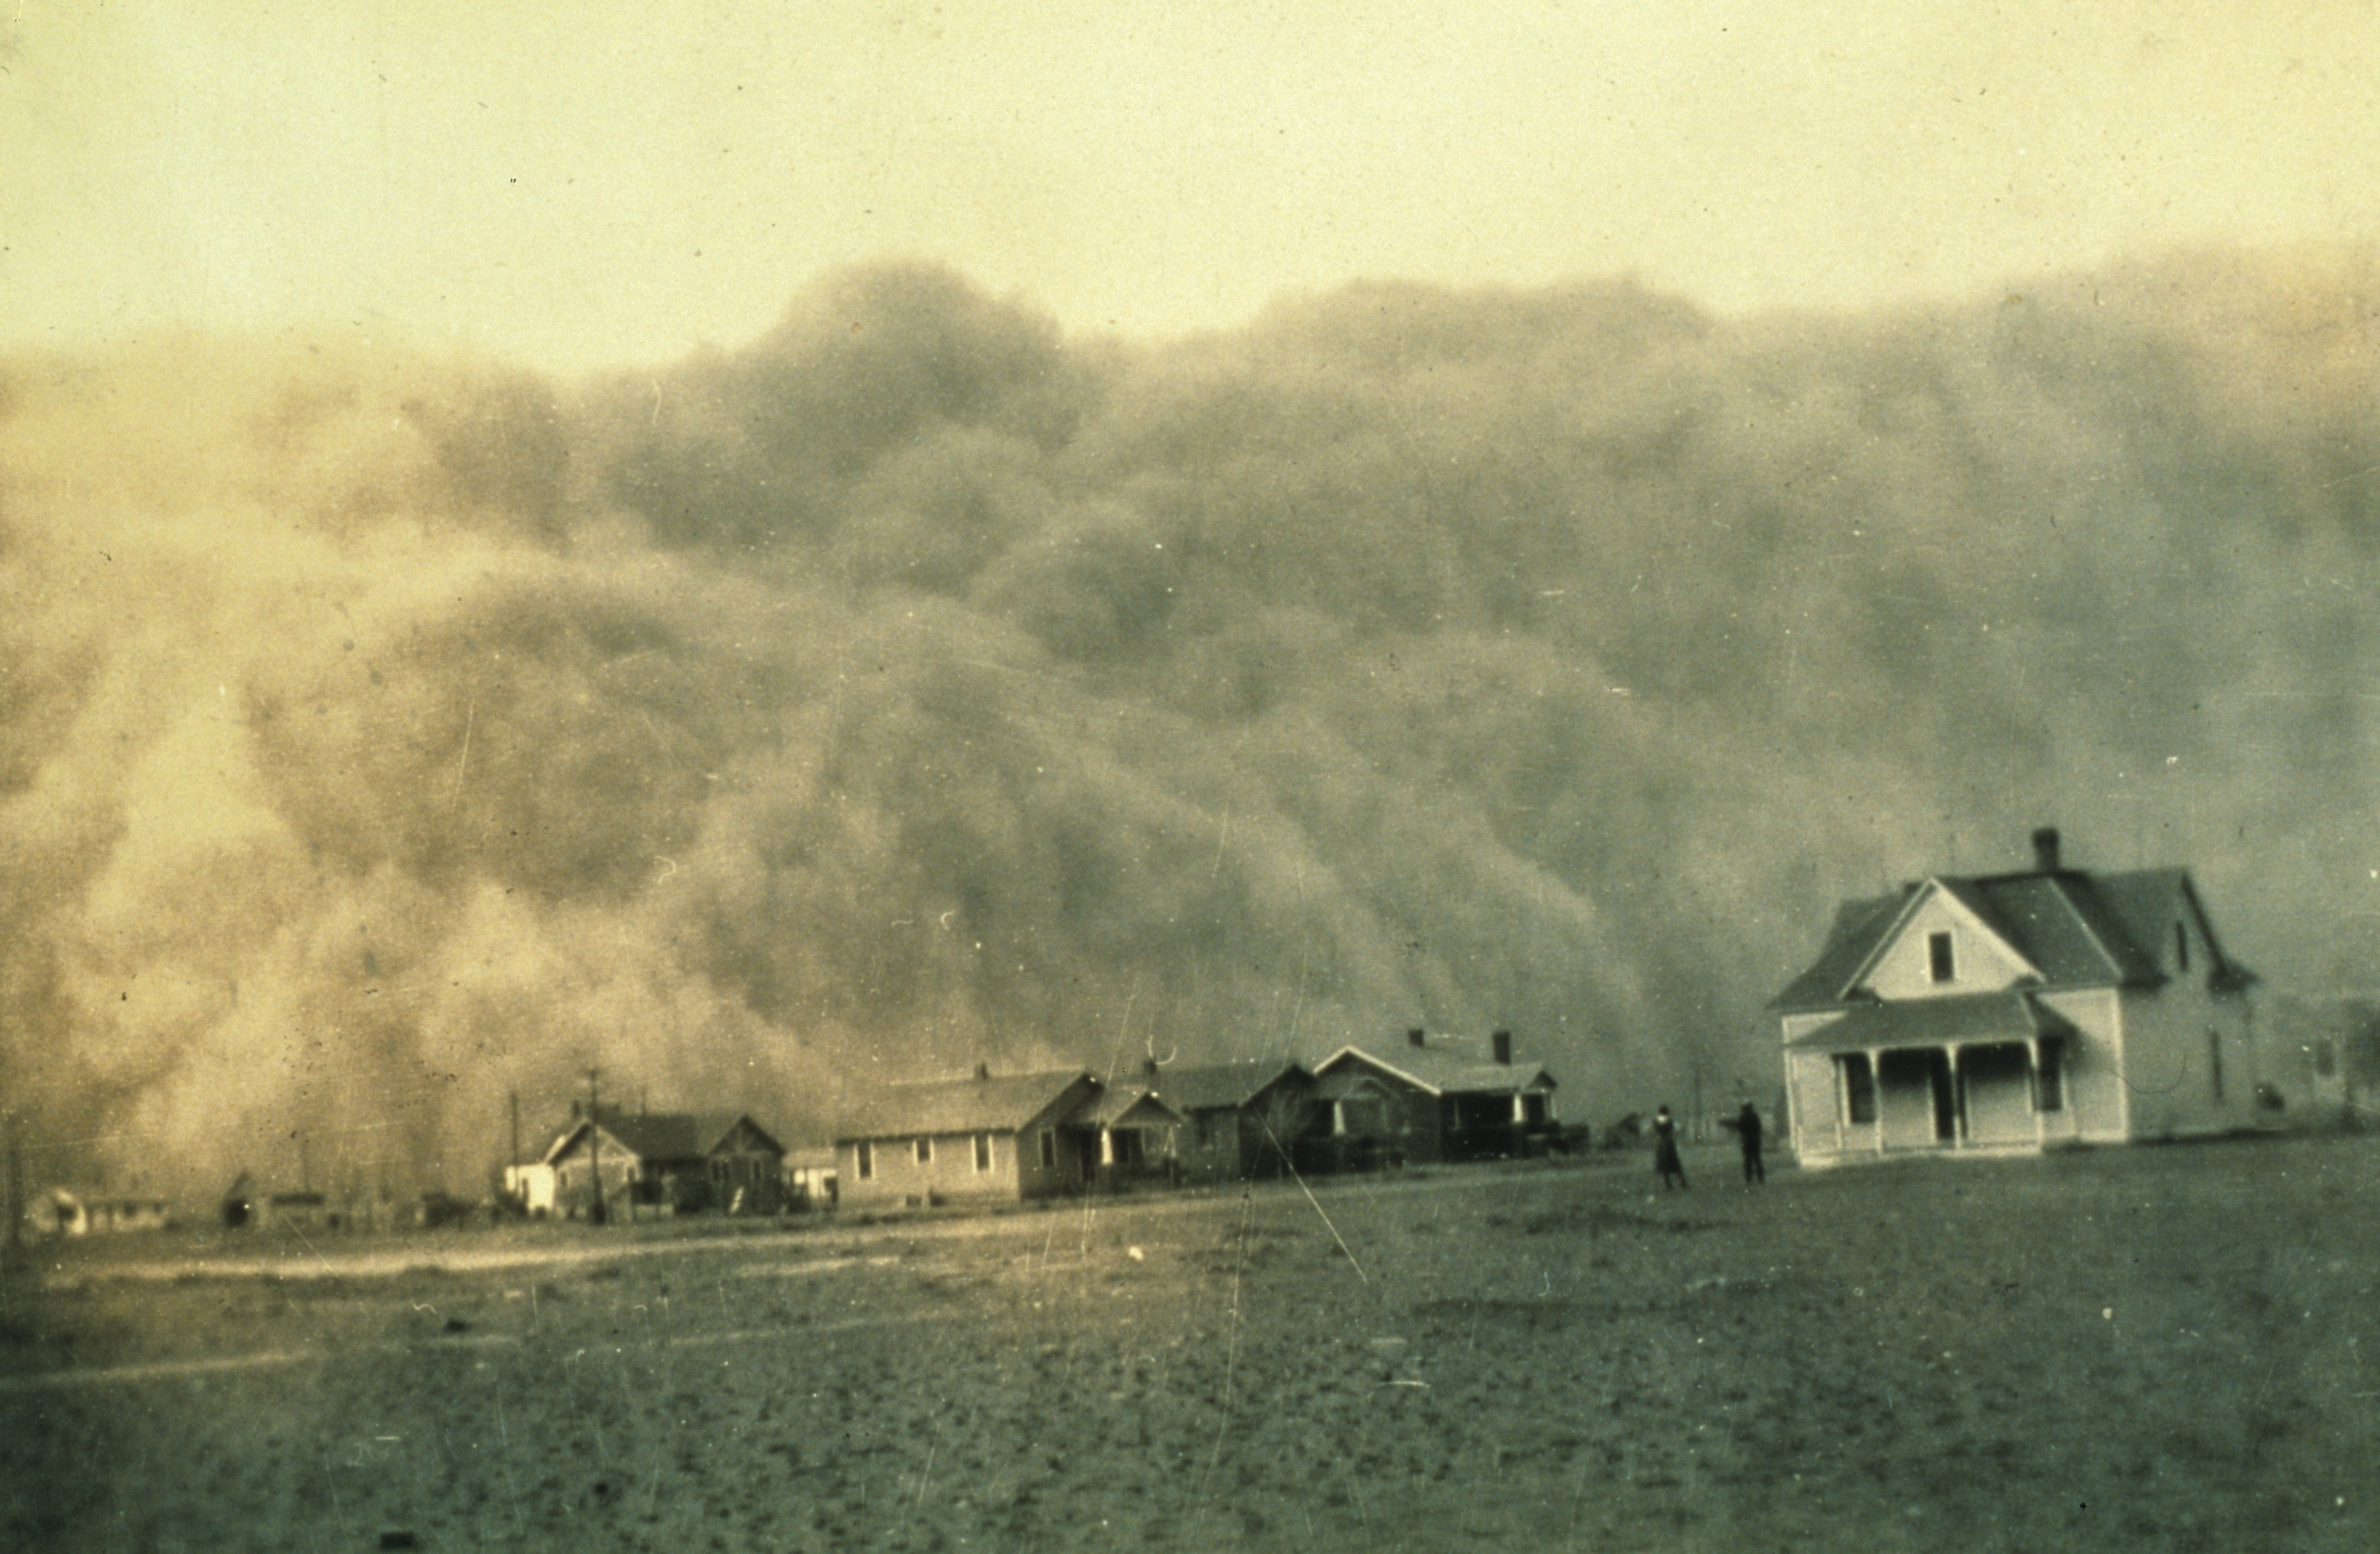 Midwest dust storm, 1935. NOAA George E. Marsh Album, the b1365, Historic C&GS Collection.